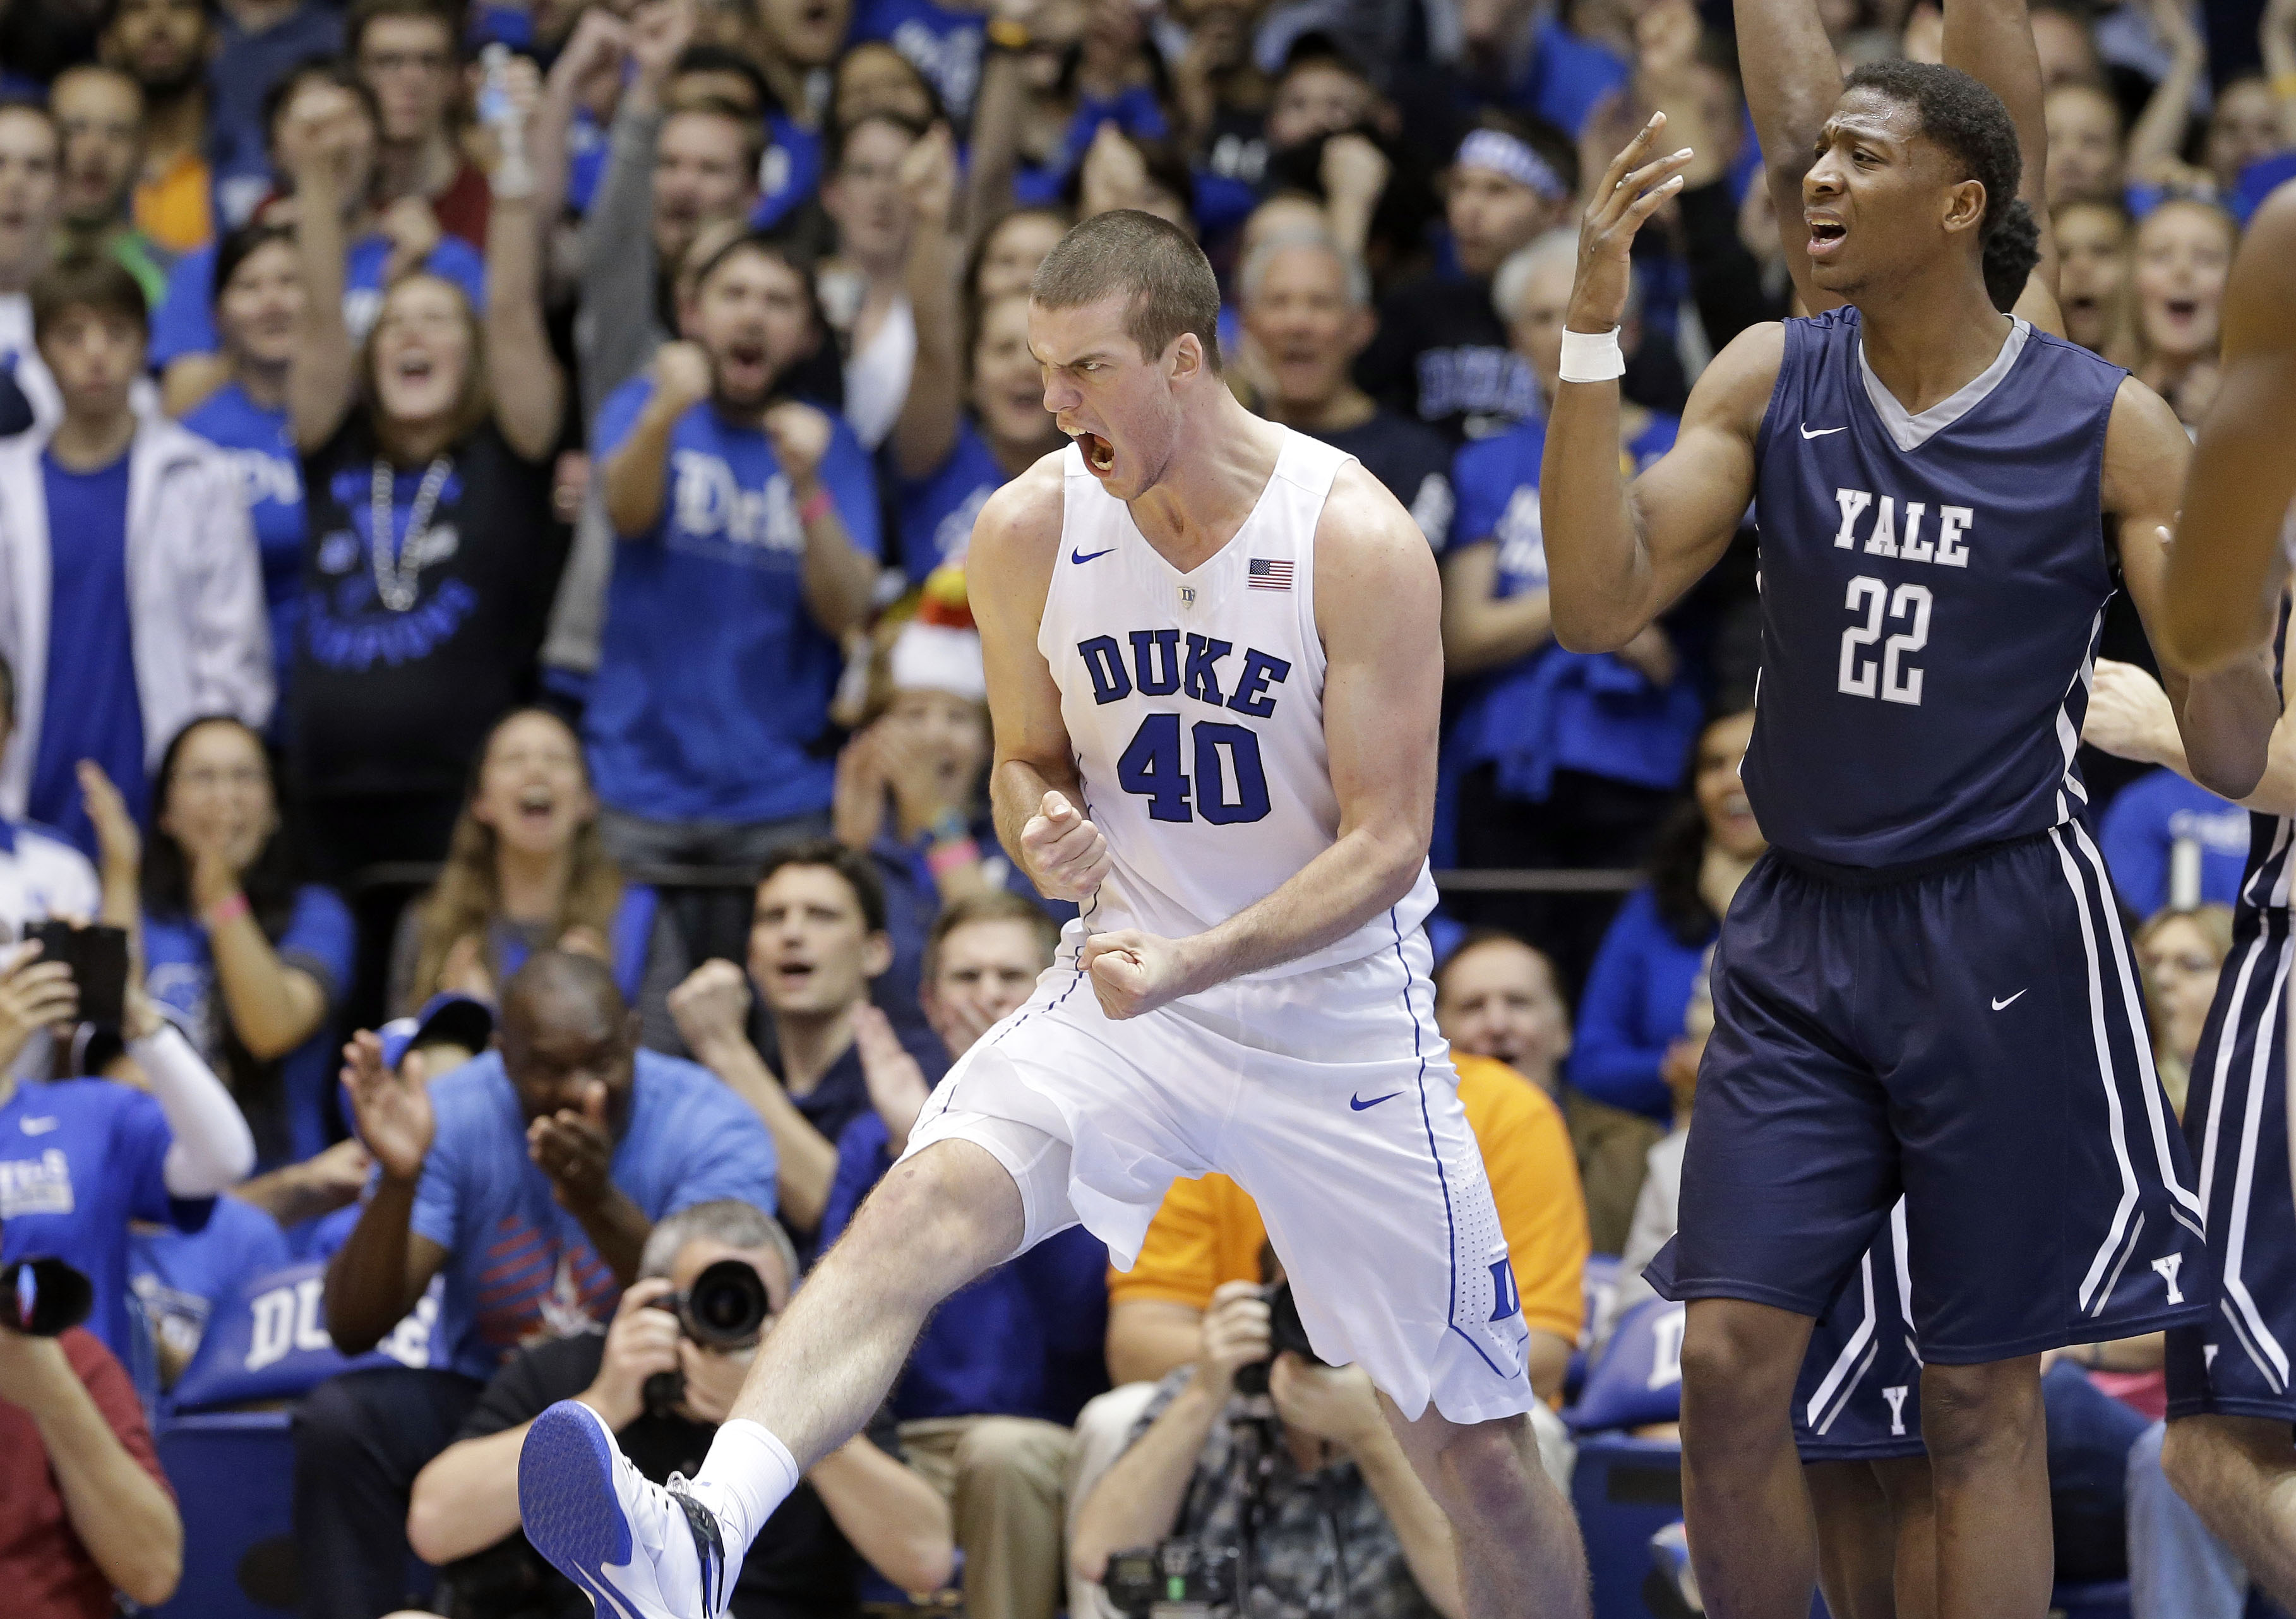 Duke's Marshall Plumlee (40) reacts following a basket, next to Yale's Justin Sears (22) during the second half of an NCAA college basketball game in Durham, N.C., Wednesday, Nov. 25, 2015. Duke won 80-61. (AP Photo/Gerry Broome)